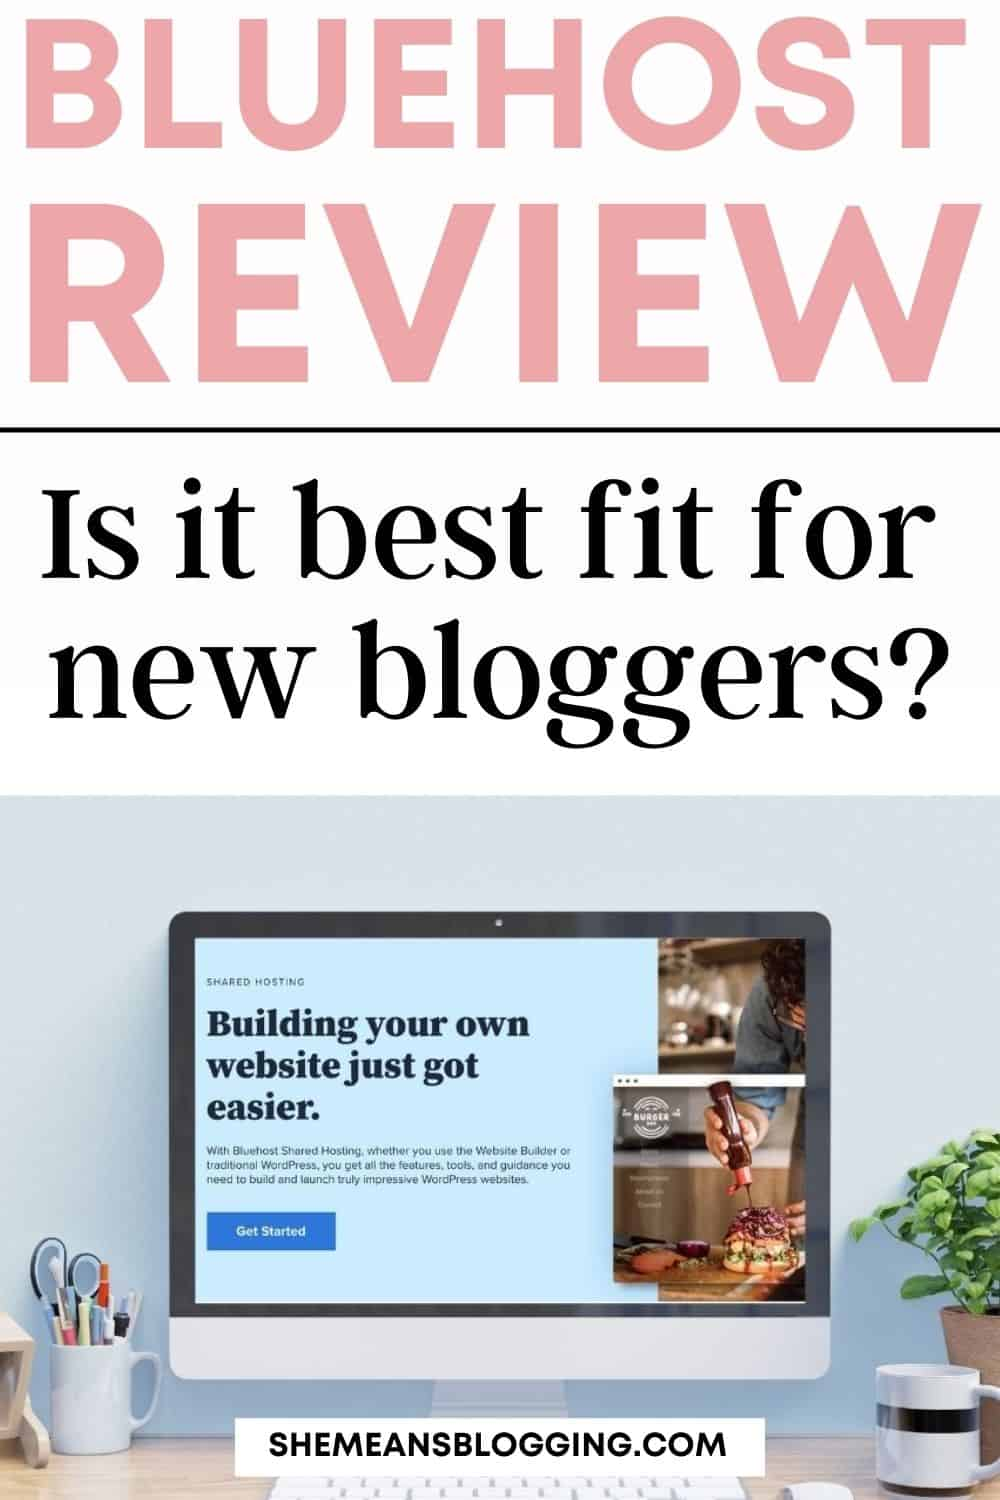 bluehost review: Is it best for bloggers?